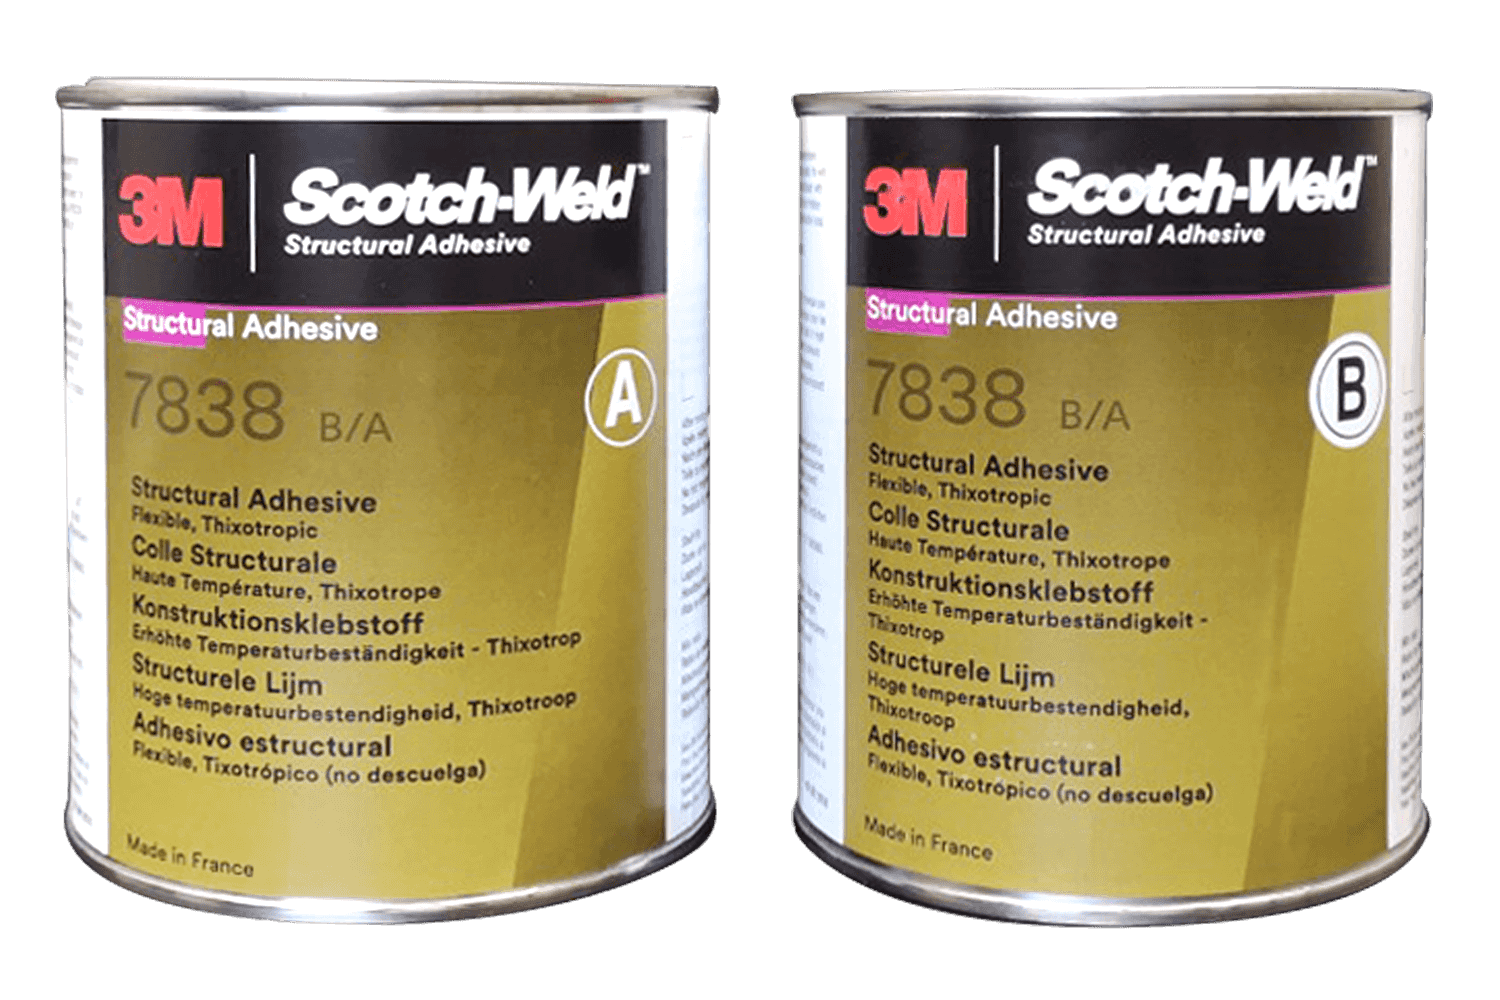 images/j2store/products/diffusees/41613-SCOTCH-WELD-7838-B-A-2KG.png